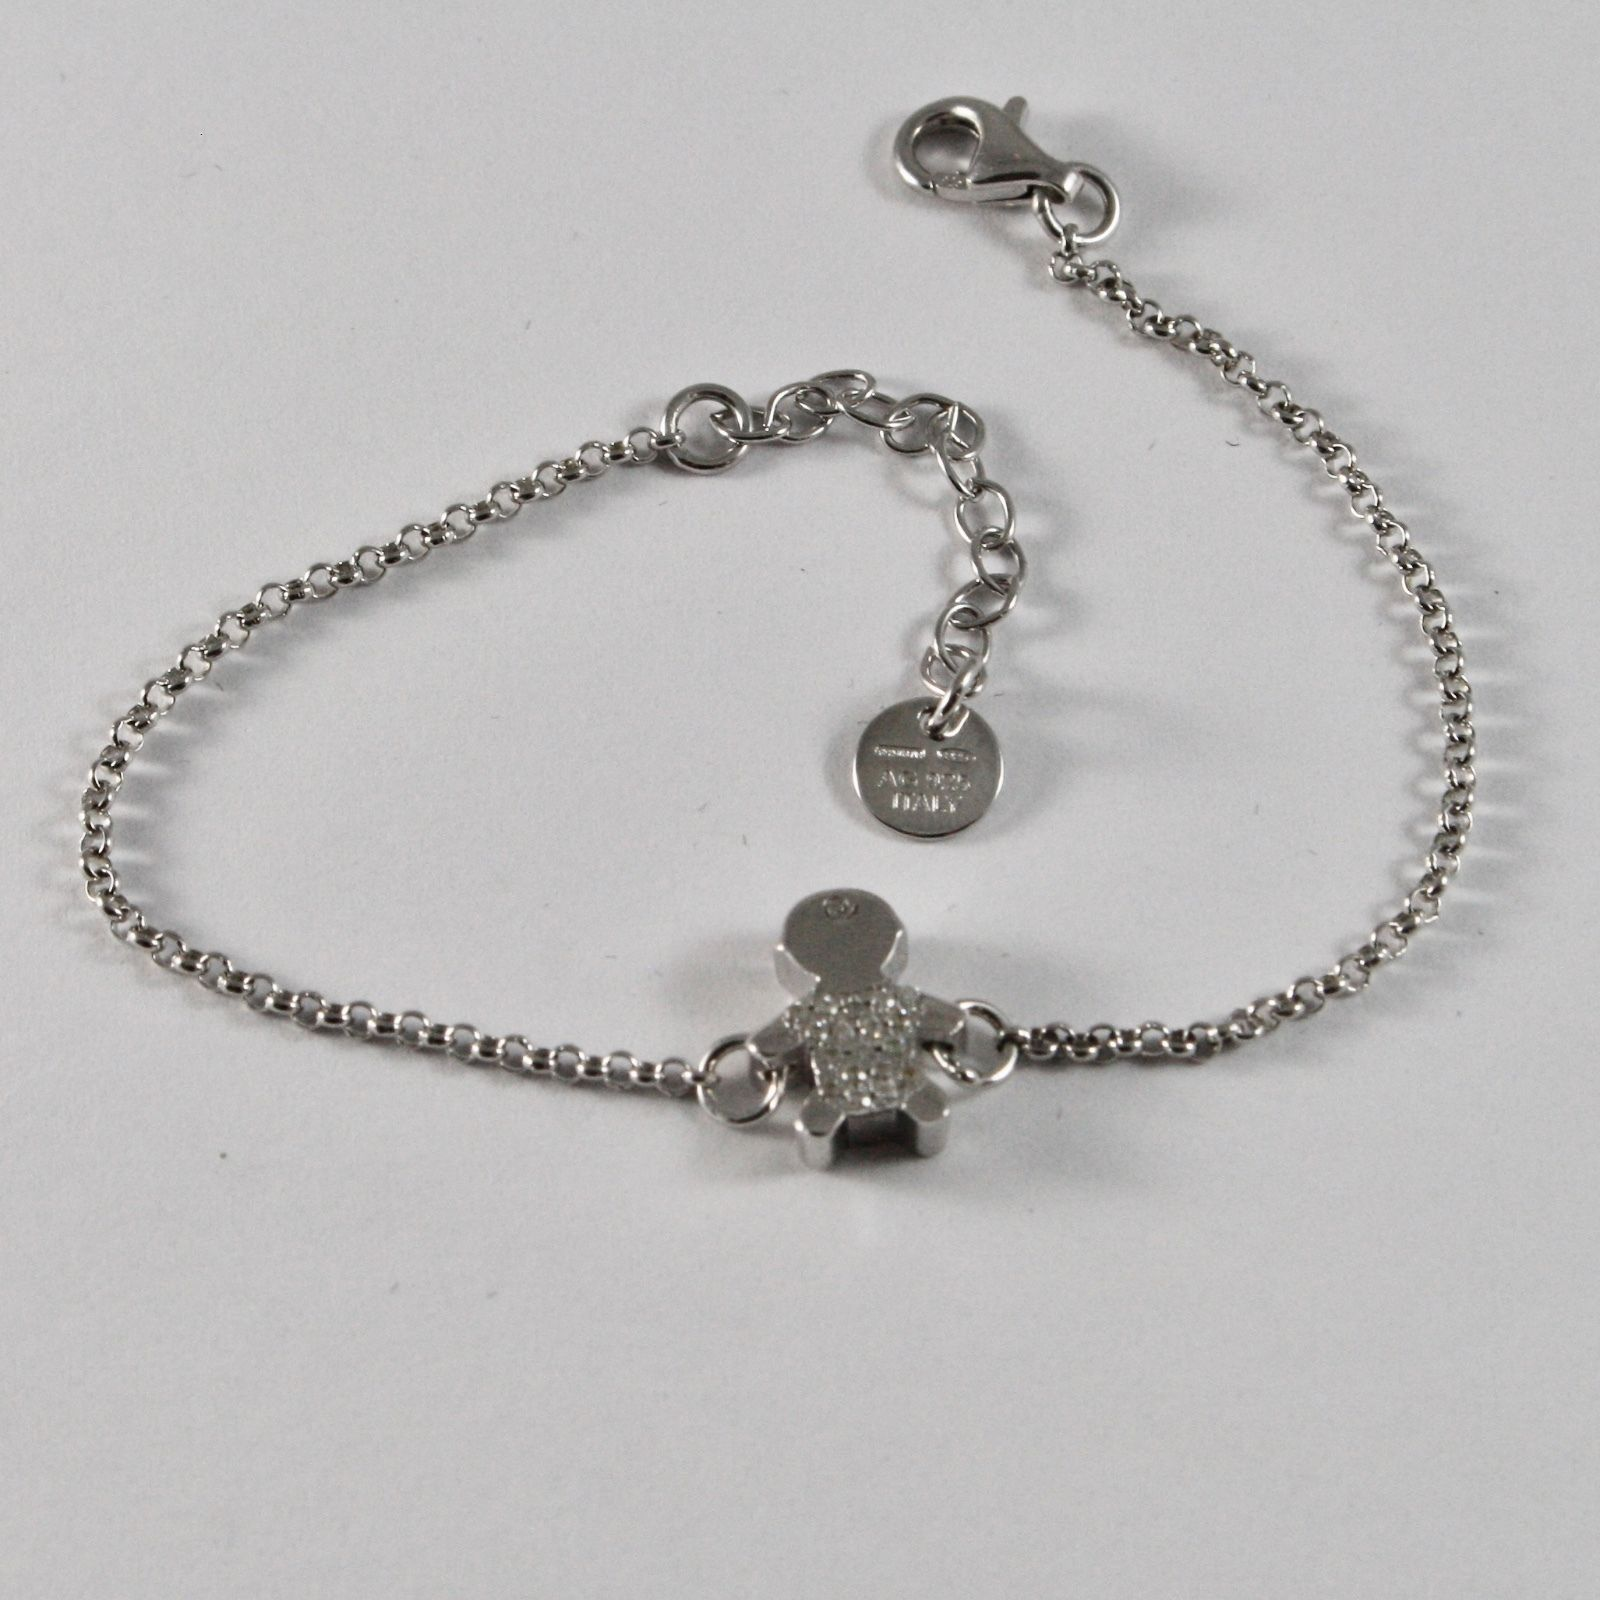 SILVER 925 BRACELET JACK&CO WITH CHILD STYLIZED AND ZIRCON CUBIC JCB0858